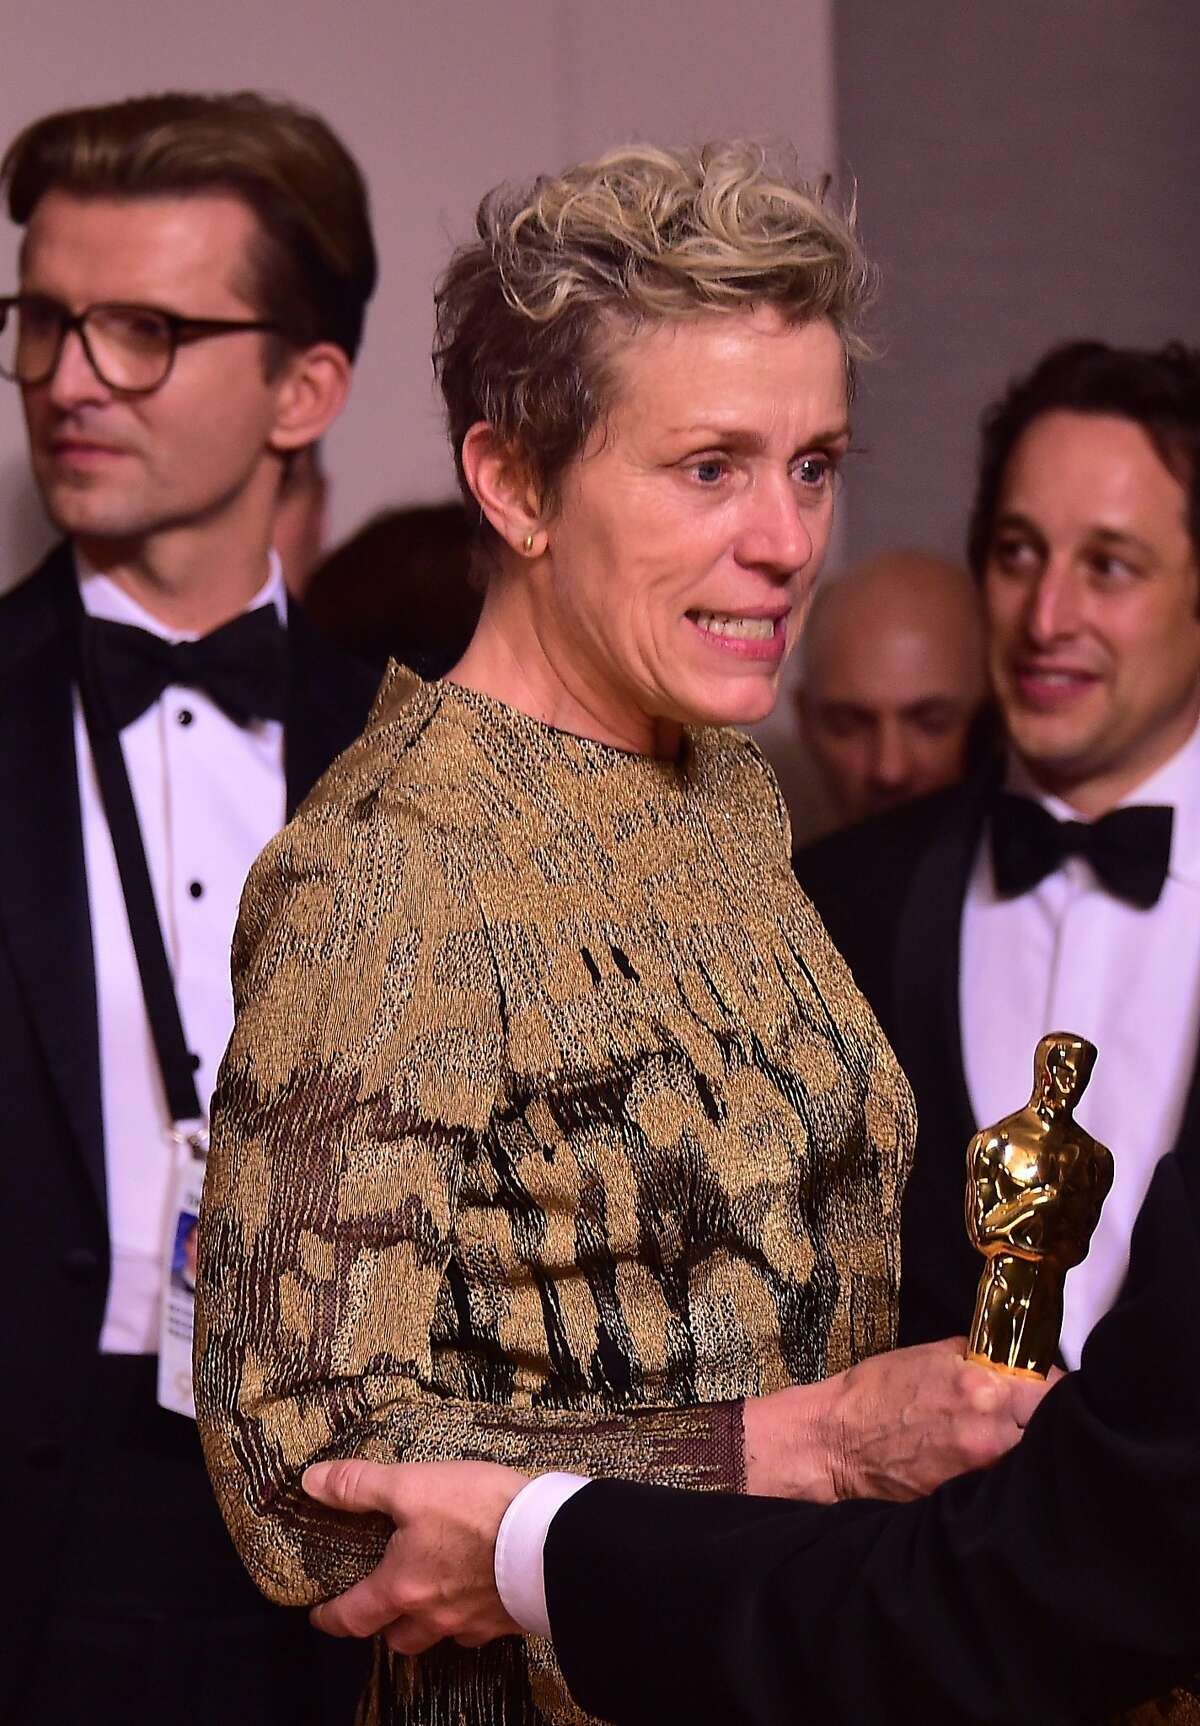 (FILES) In this file photo taken on March 4, 2018 actress Frances McDormand poses in the press room with the Oscar for best actress during the 90th Annual Academy Awards in Hollywood, California. Oscar-winner Frances McDormand had her statuette stolen at a post-show party by a man who allegedly snatched it from her table before he was arrested, witnesses and police said March 5, 2018. McDormand, 60, won best actress for her role as a rage-filled mother seeking justice for her murdered daughter in Martin McDonagh's